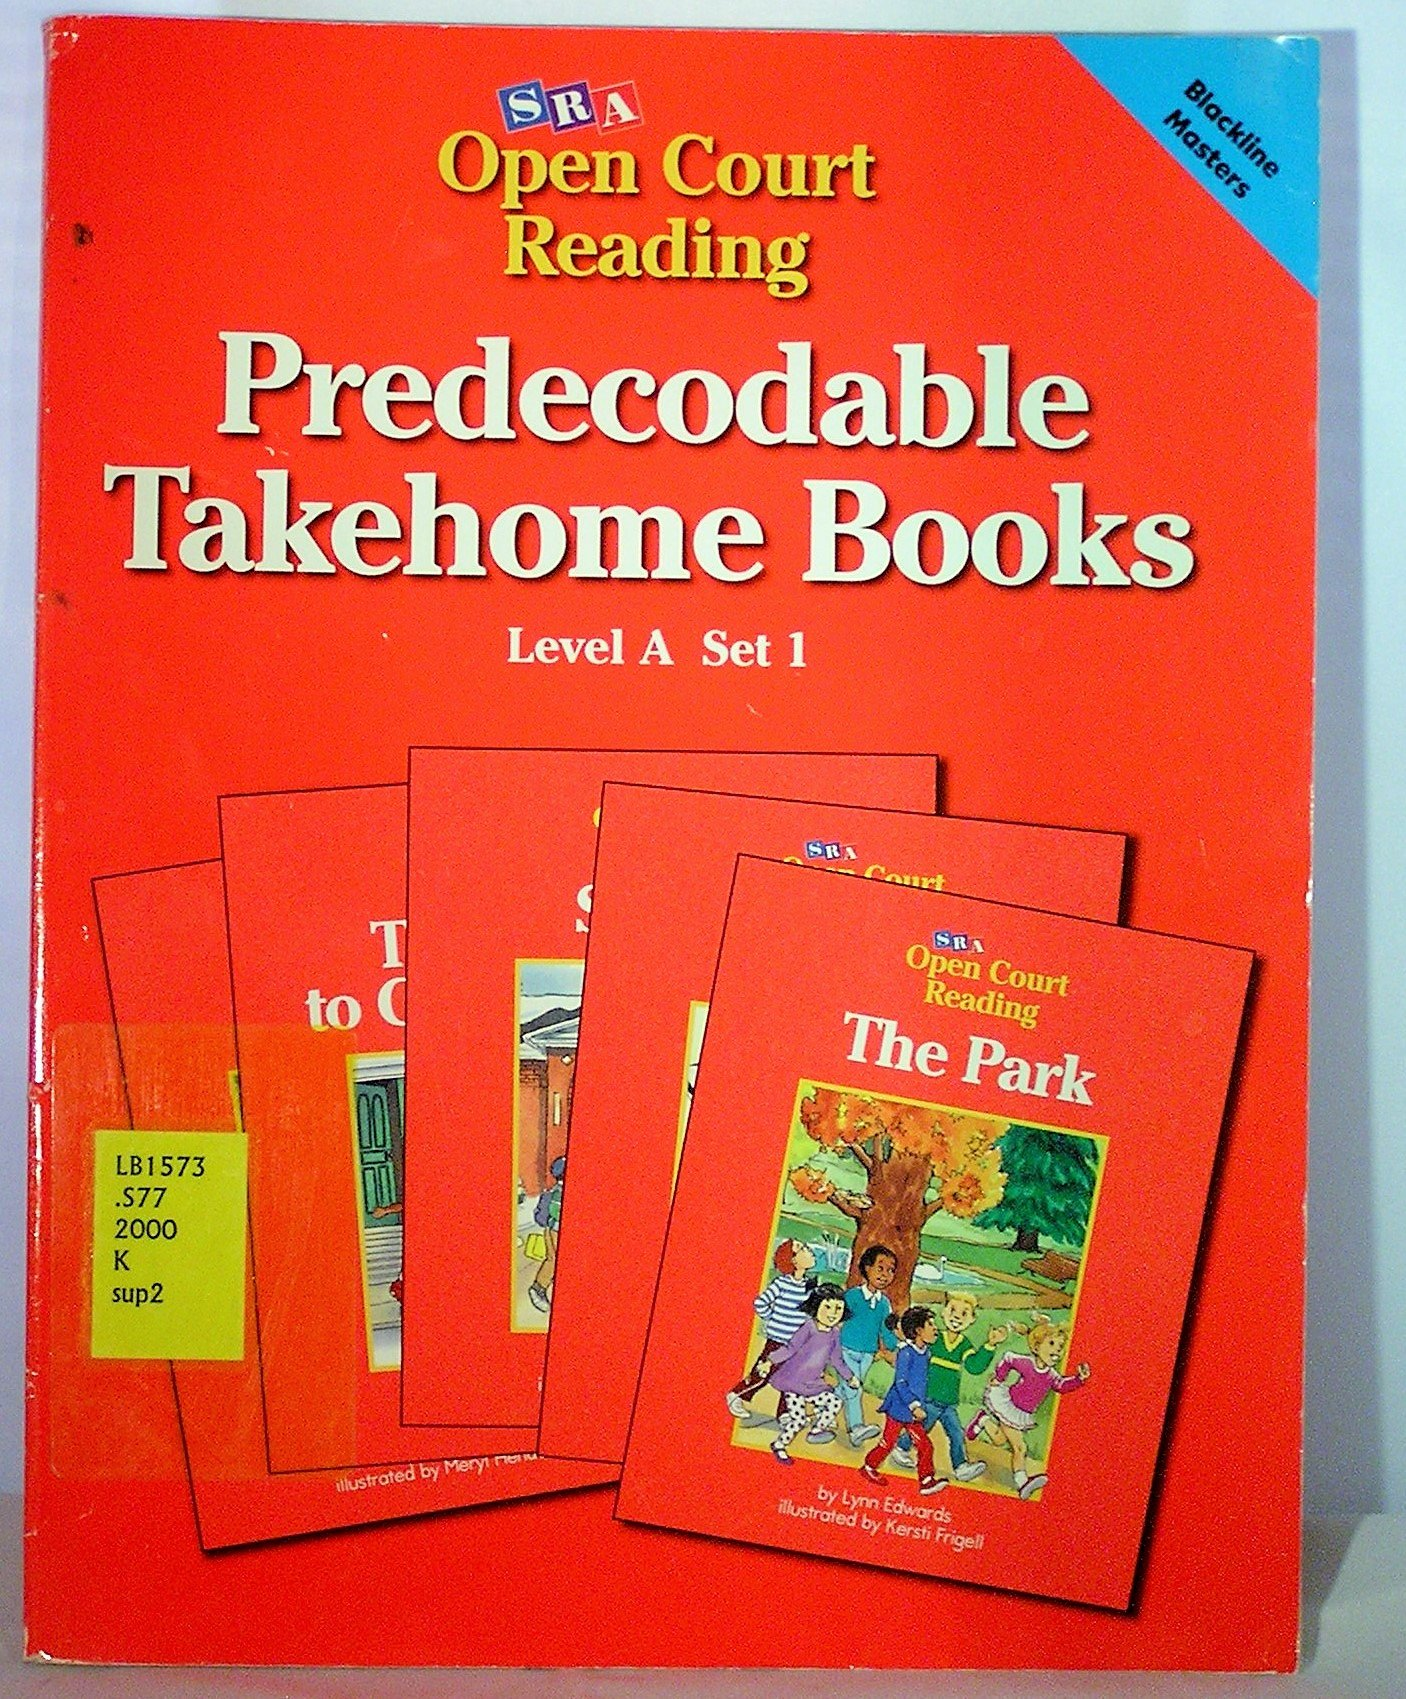 Open Court Reading Pre-Decodable Takehome Books Level A Set 1